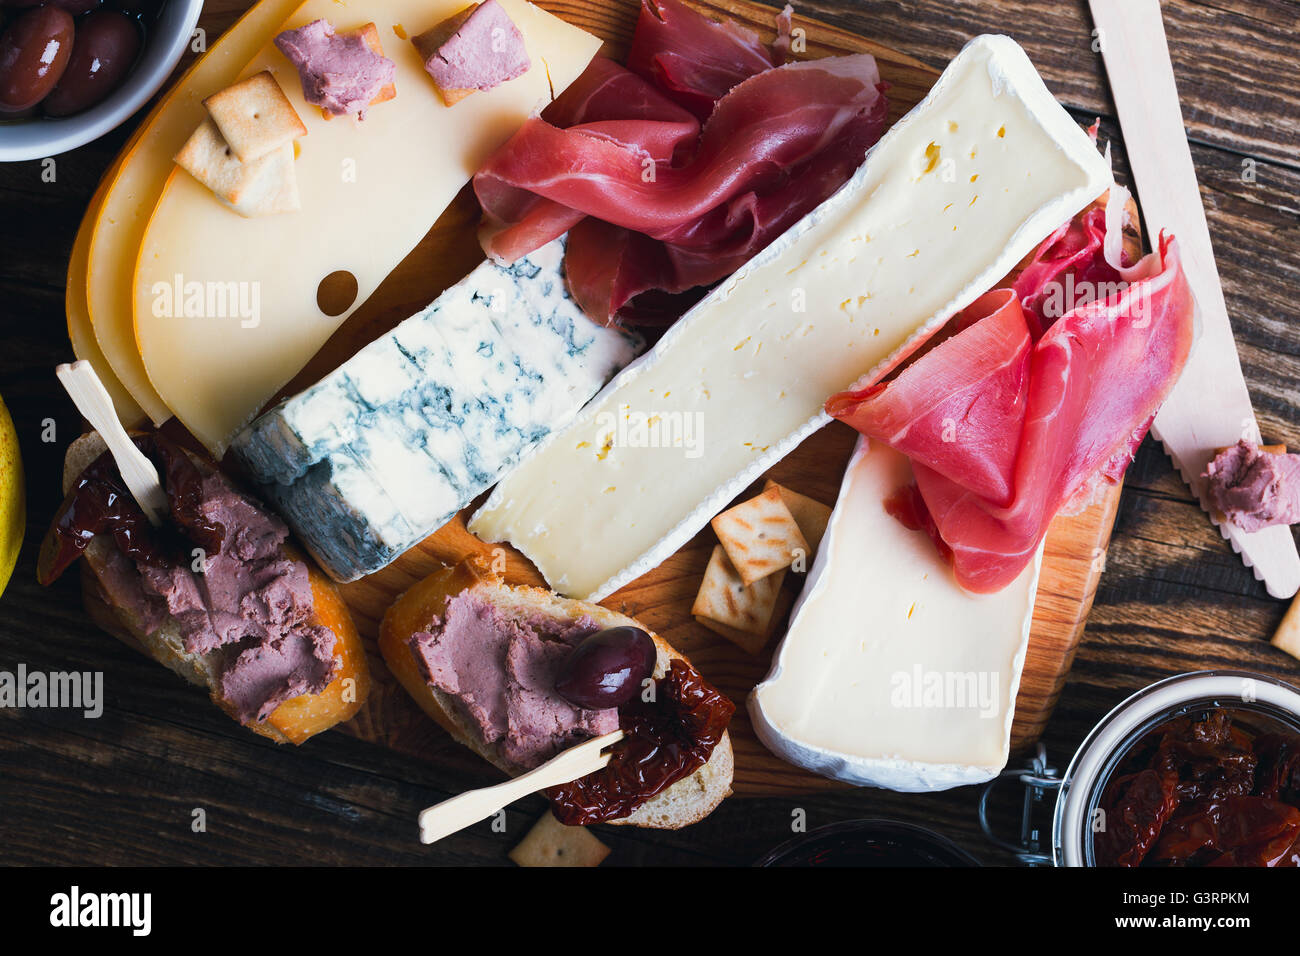 Antipasti platter with different meat and cheese products on  wooden board. Top view - Stock Image